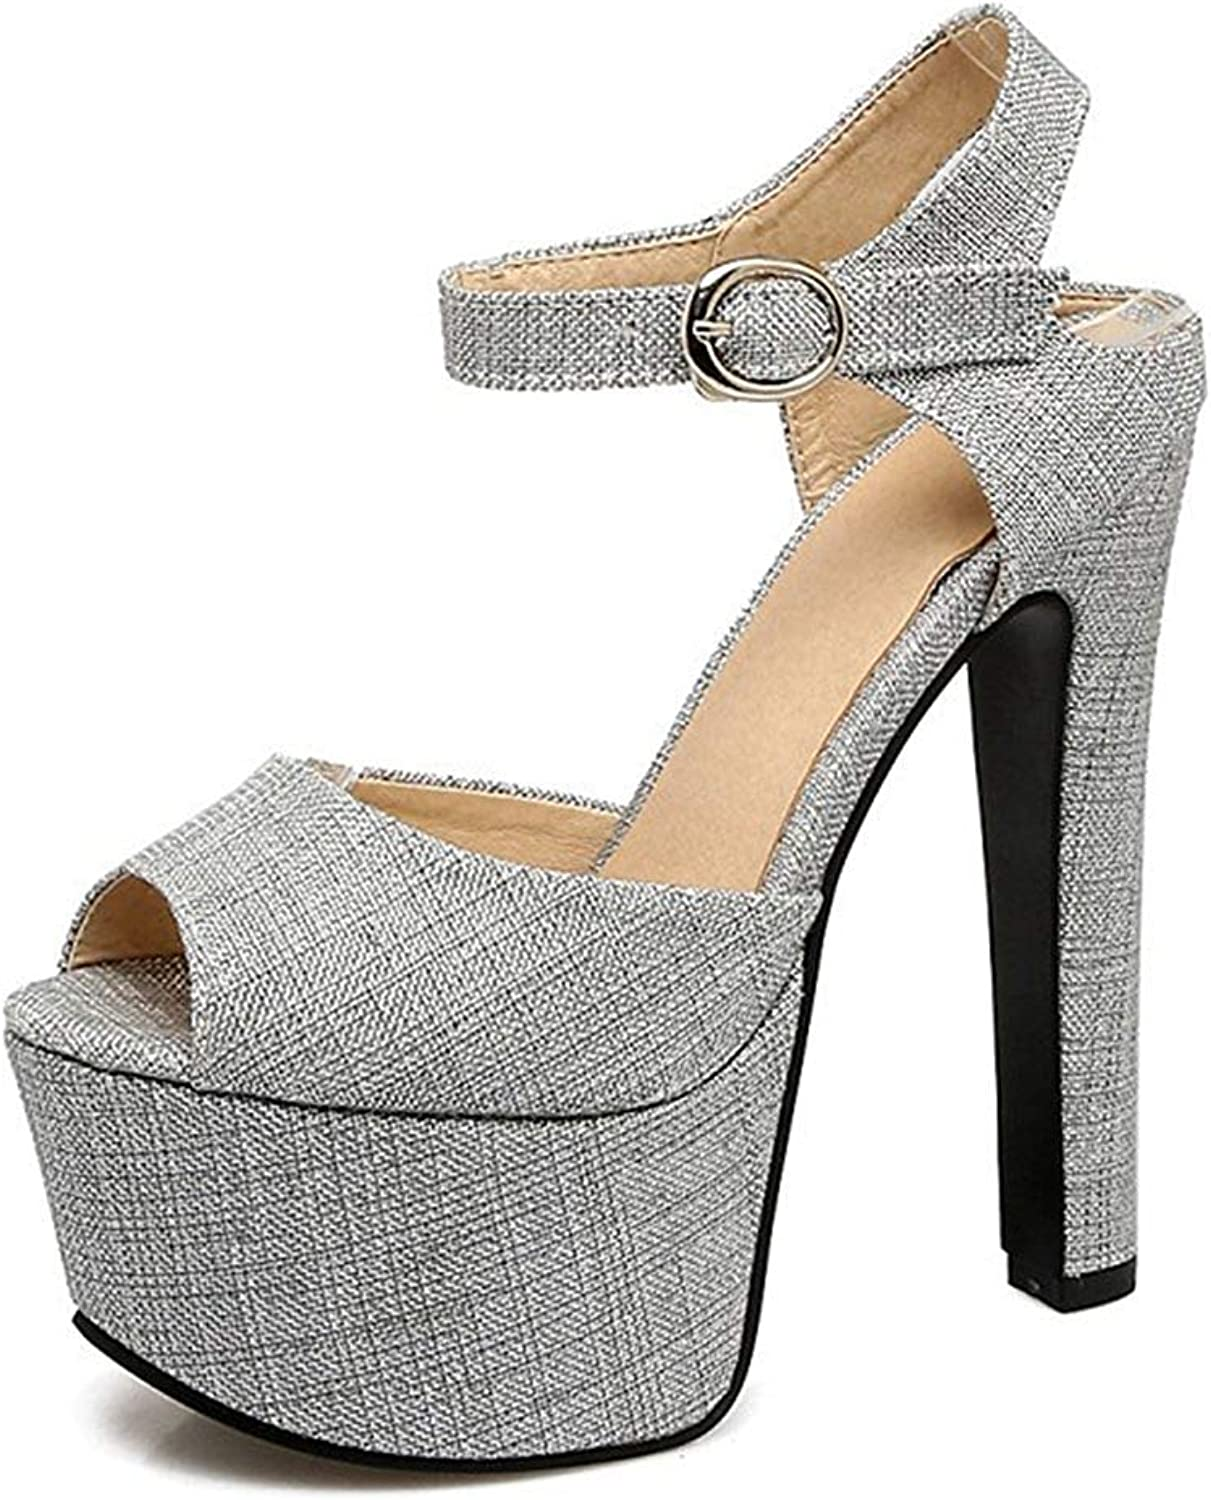 Unm Women's Platform Sandals with Ankle Strap - Sexy Club Buckled Chunky shoes - Peep Toe Very High Heel